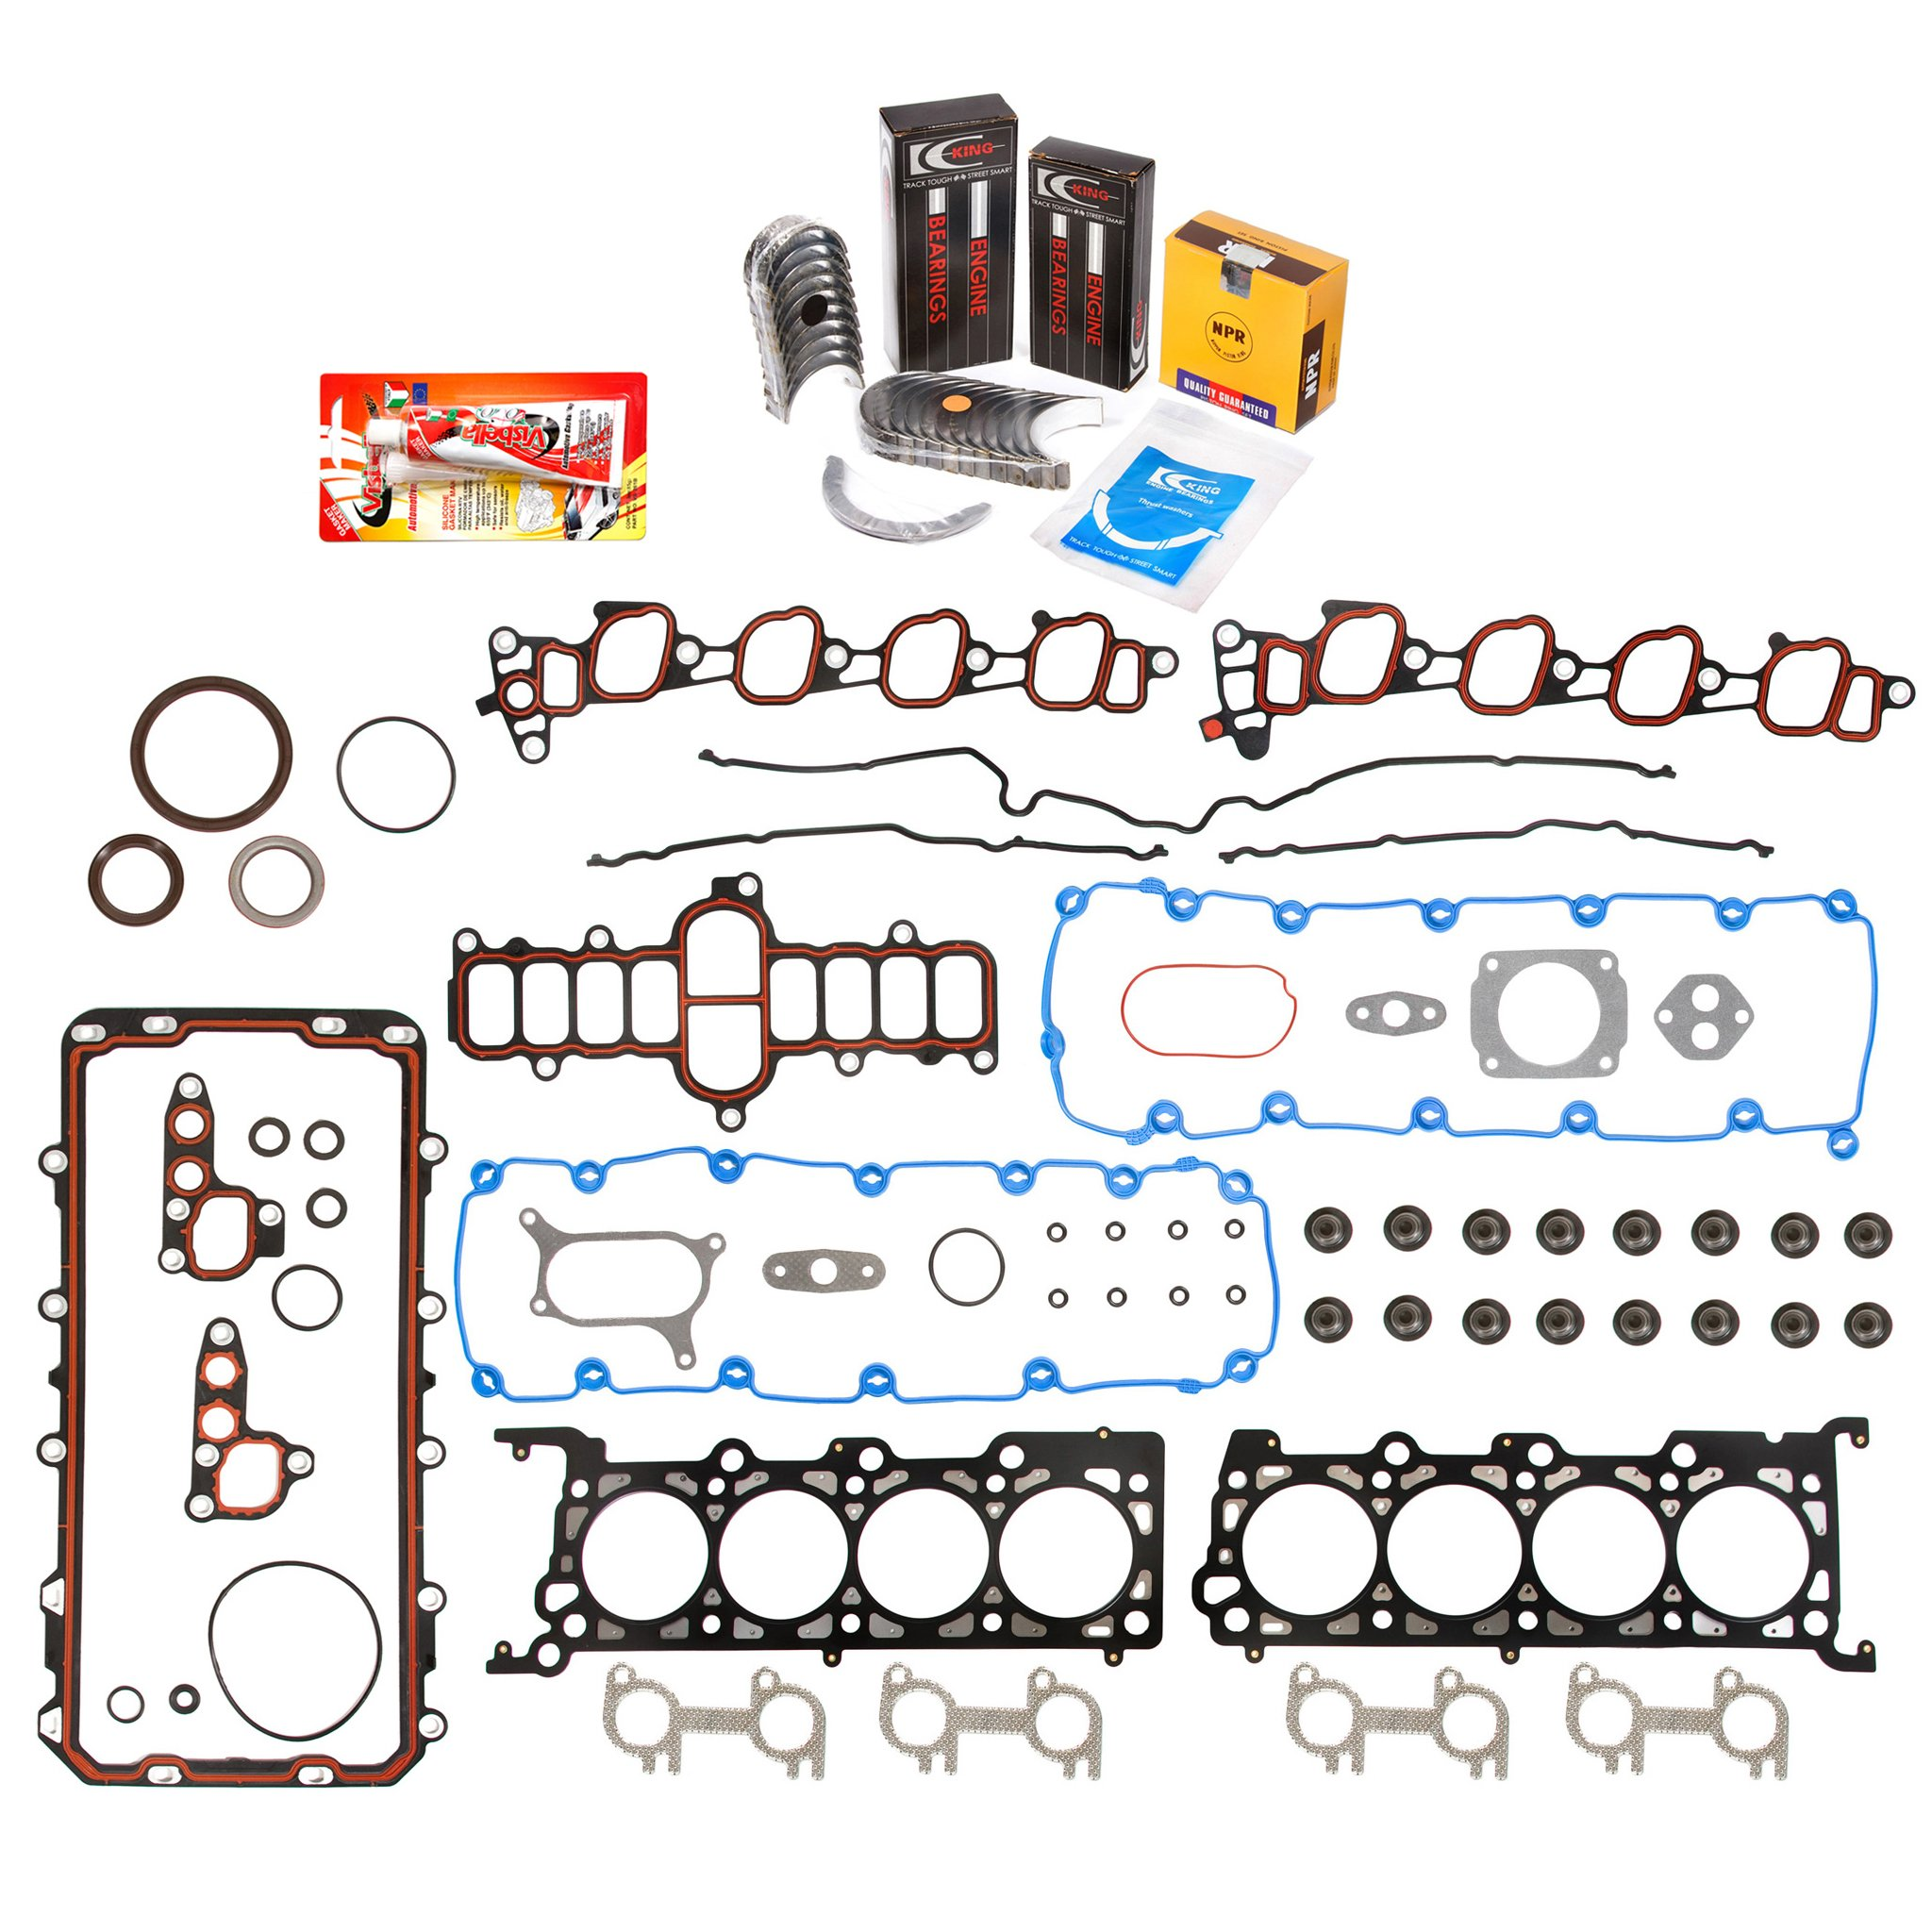 Domestic Gaskets Engine Rering Kit FSBRR8-21115 00-04 Ford E150 E250 F150 Excursion 5.4 SOHC 16V Full Gasket Set, Standard Size Main Rod Bearings, Standard Size Piston Rings by Domestic Gaskets